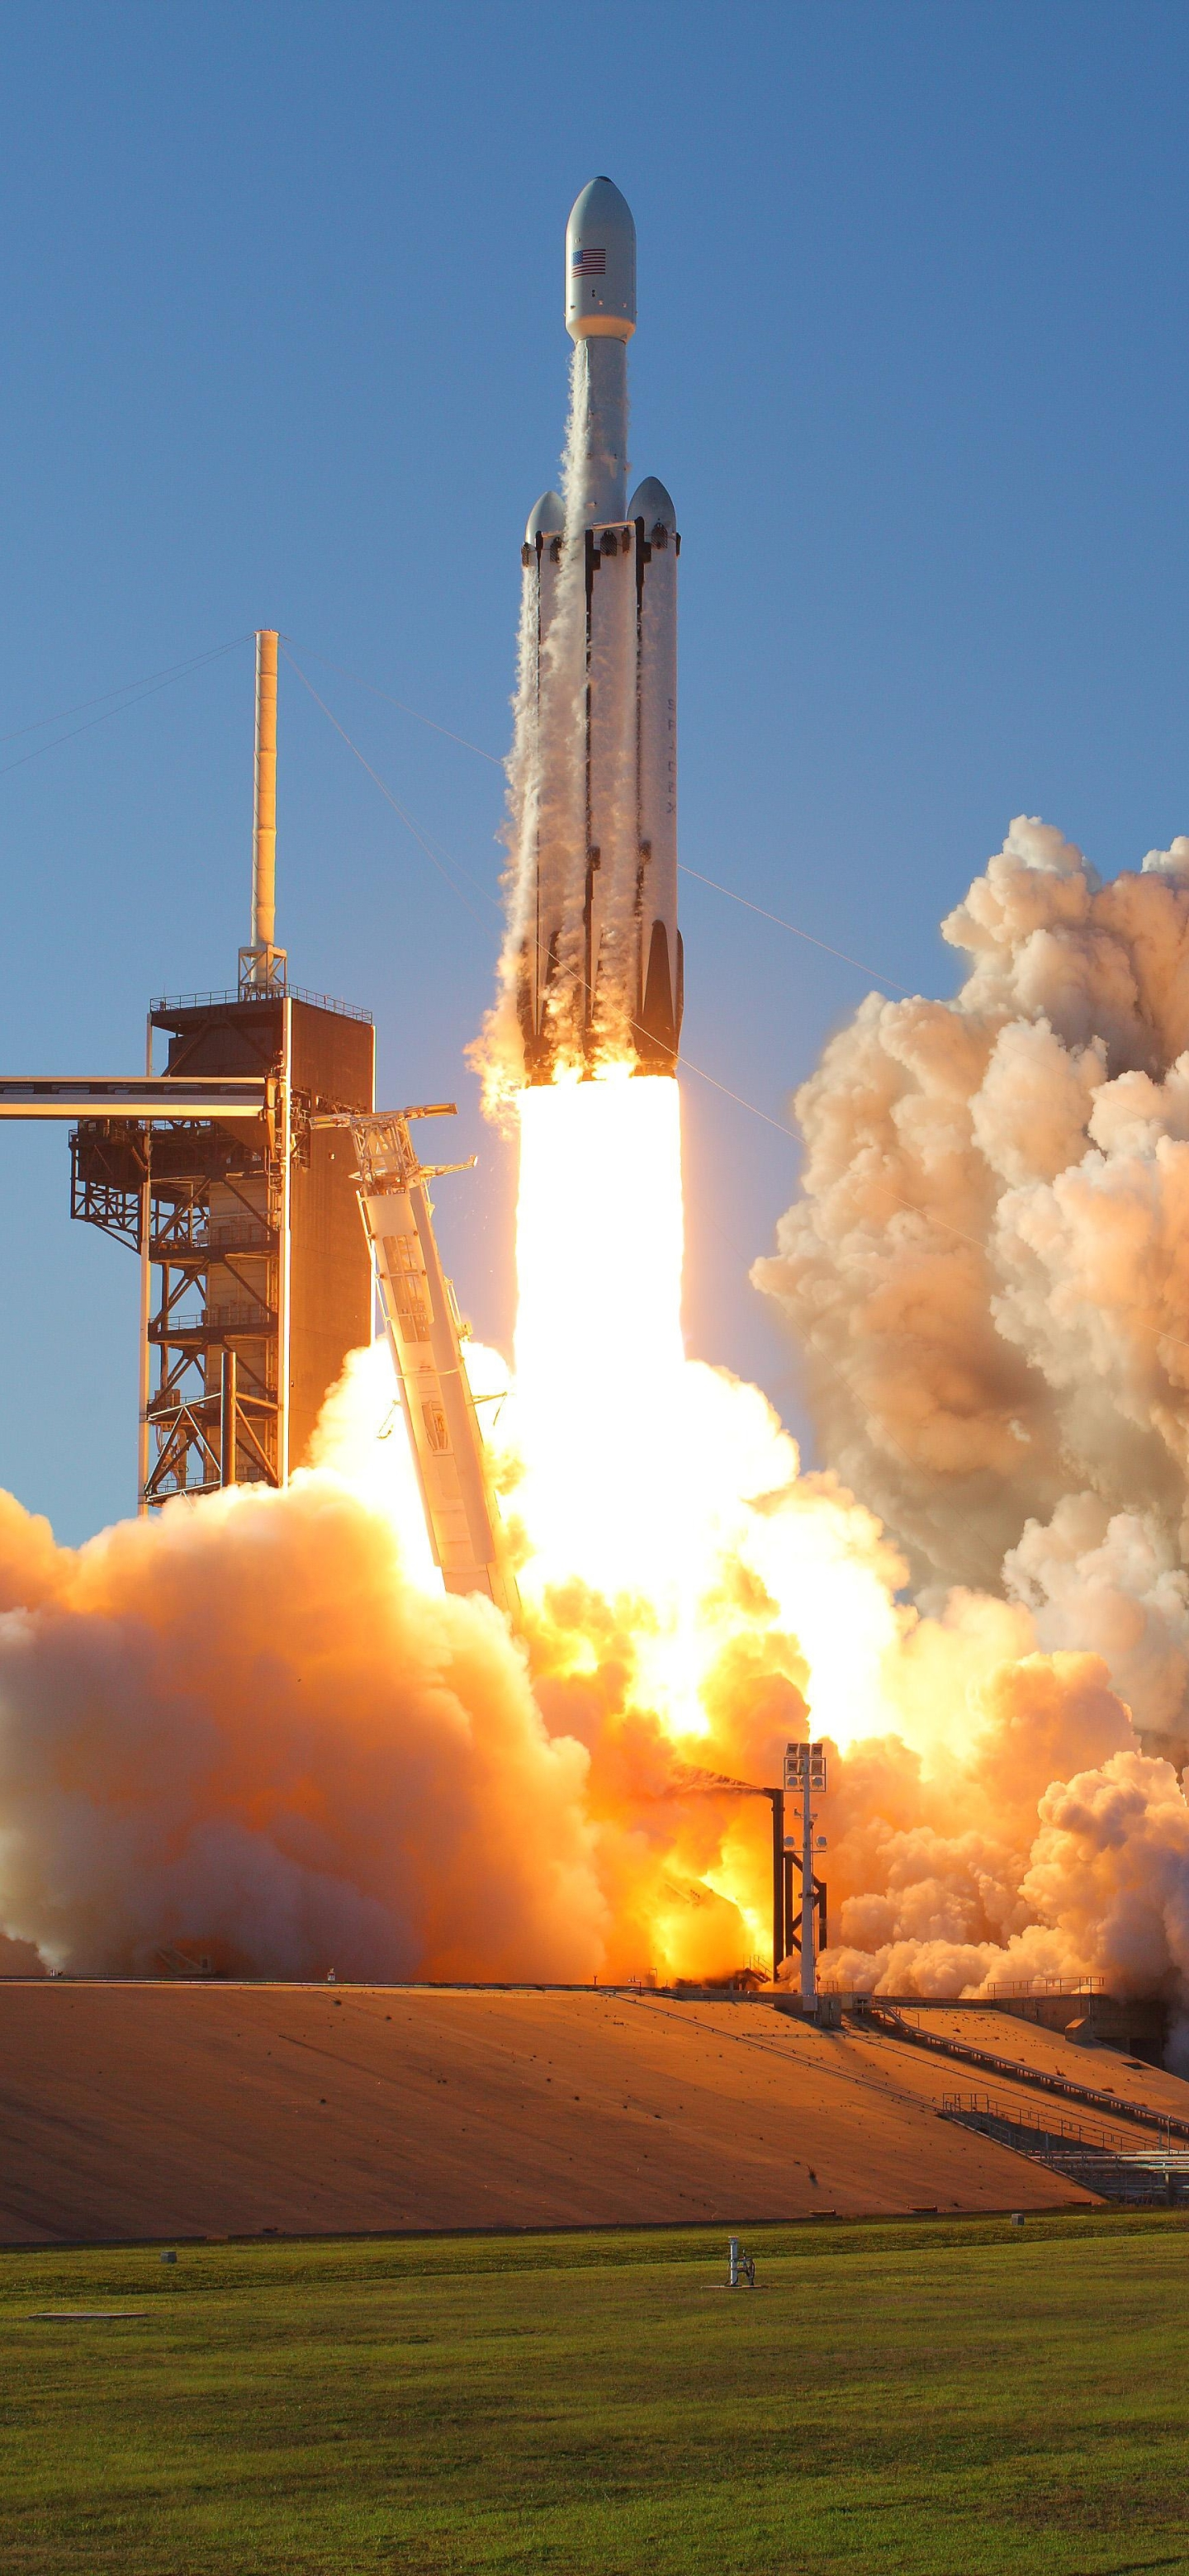 TechnologySpaceX 1440x3120 Wallpaper ID 817425   Mobile Abyss 1440x3120